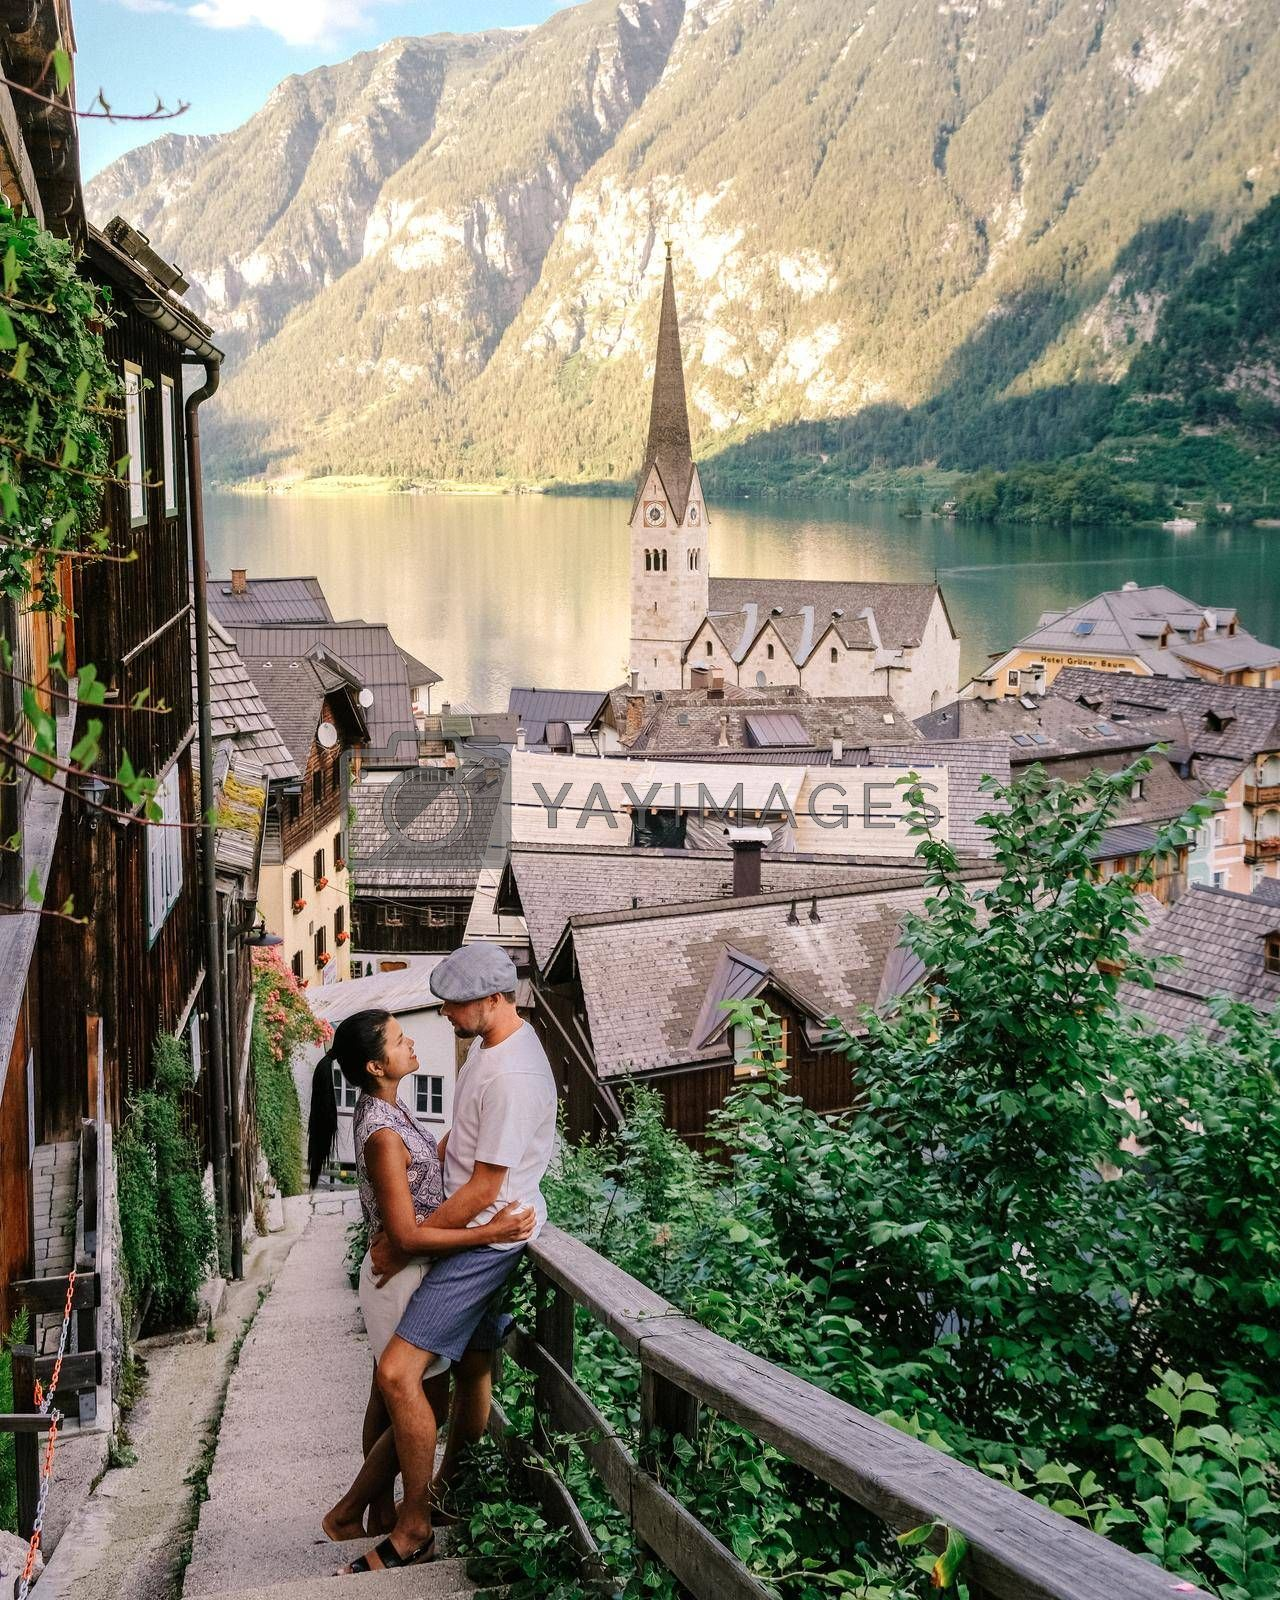 couple visit Hallstadt town, View of Hallstatt Hallstadt town with reflection in lake with blue sky above